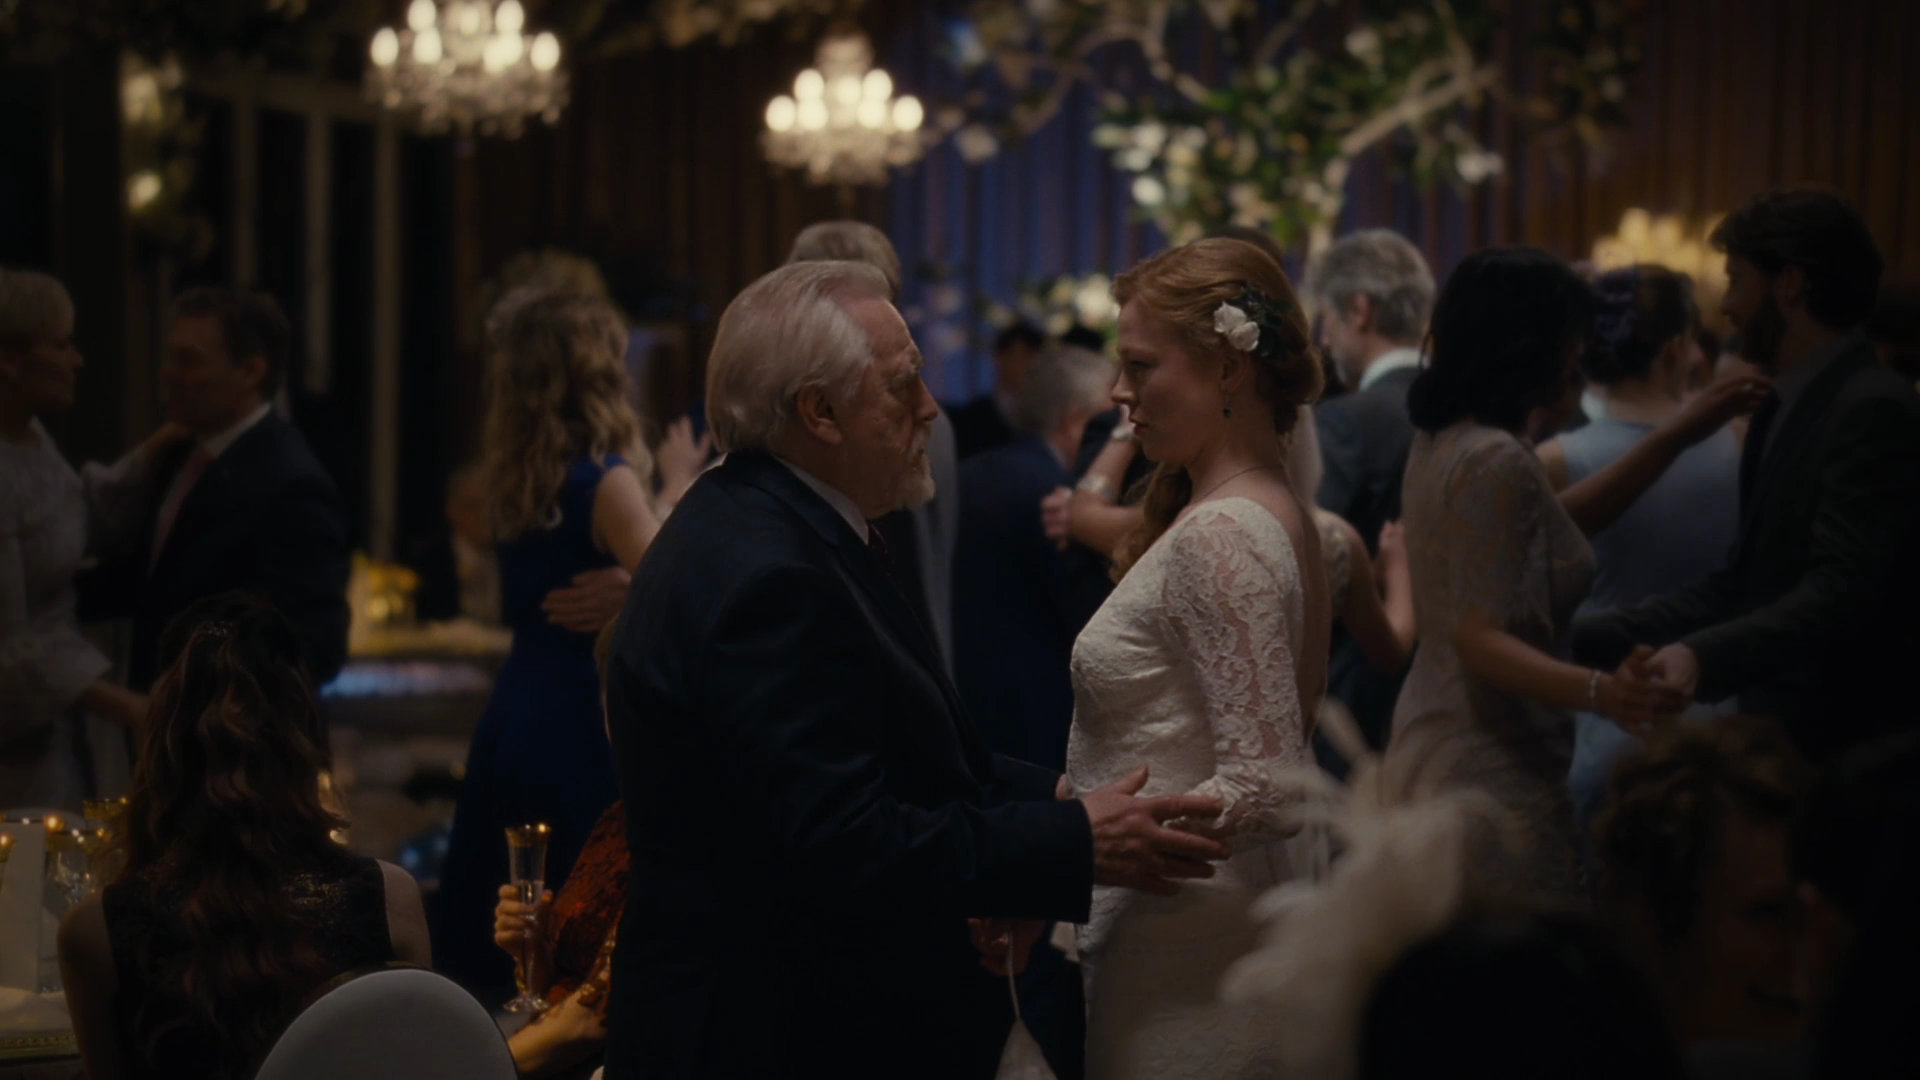 succession.s01e10.nobody.is.ever.missing.1080p.amzn.web-dl.ddp5.1.h.264-ntb.mkv_001695110.png